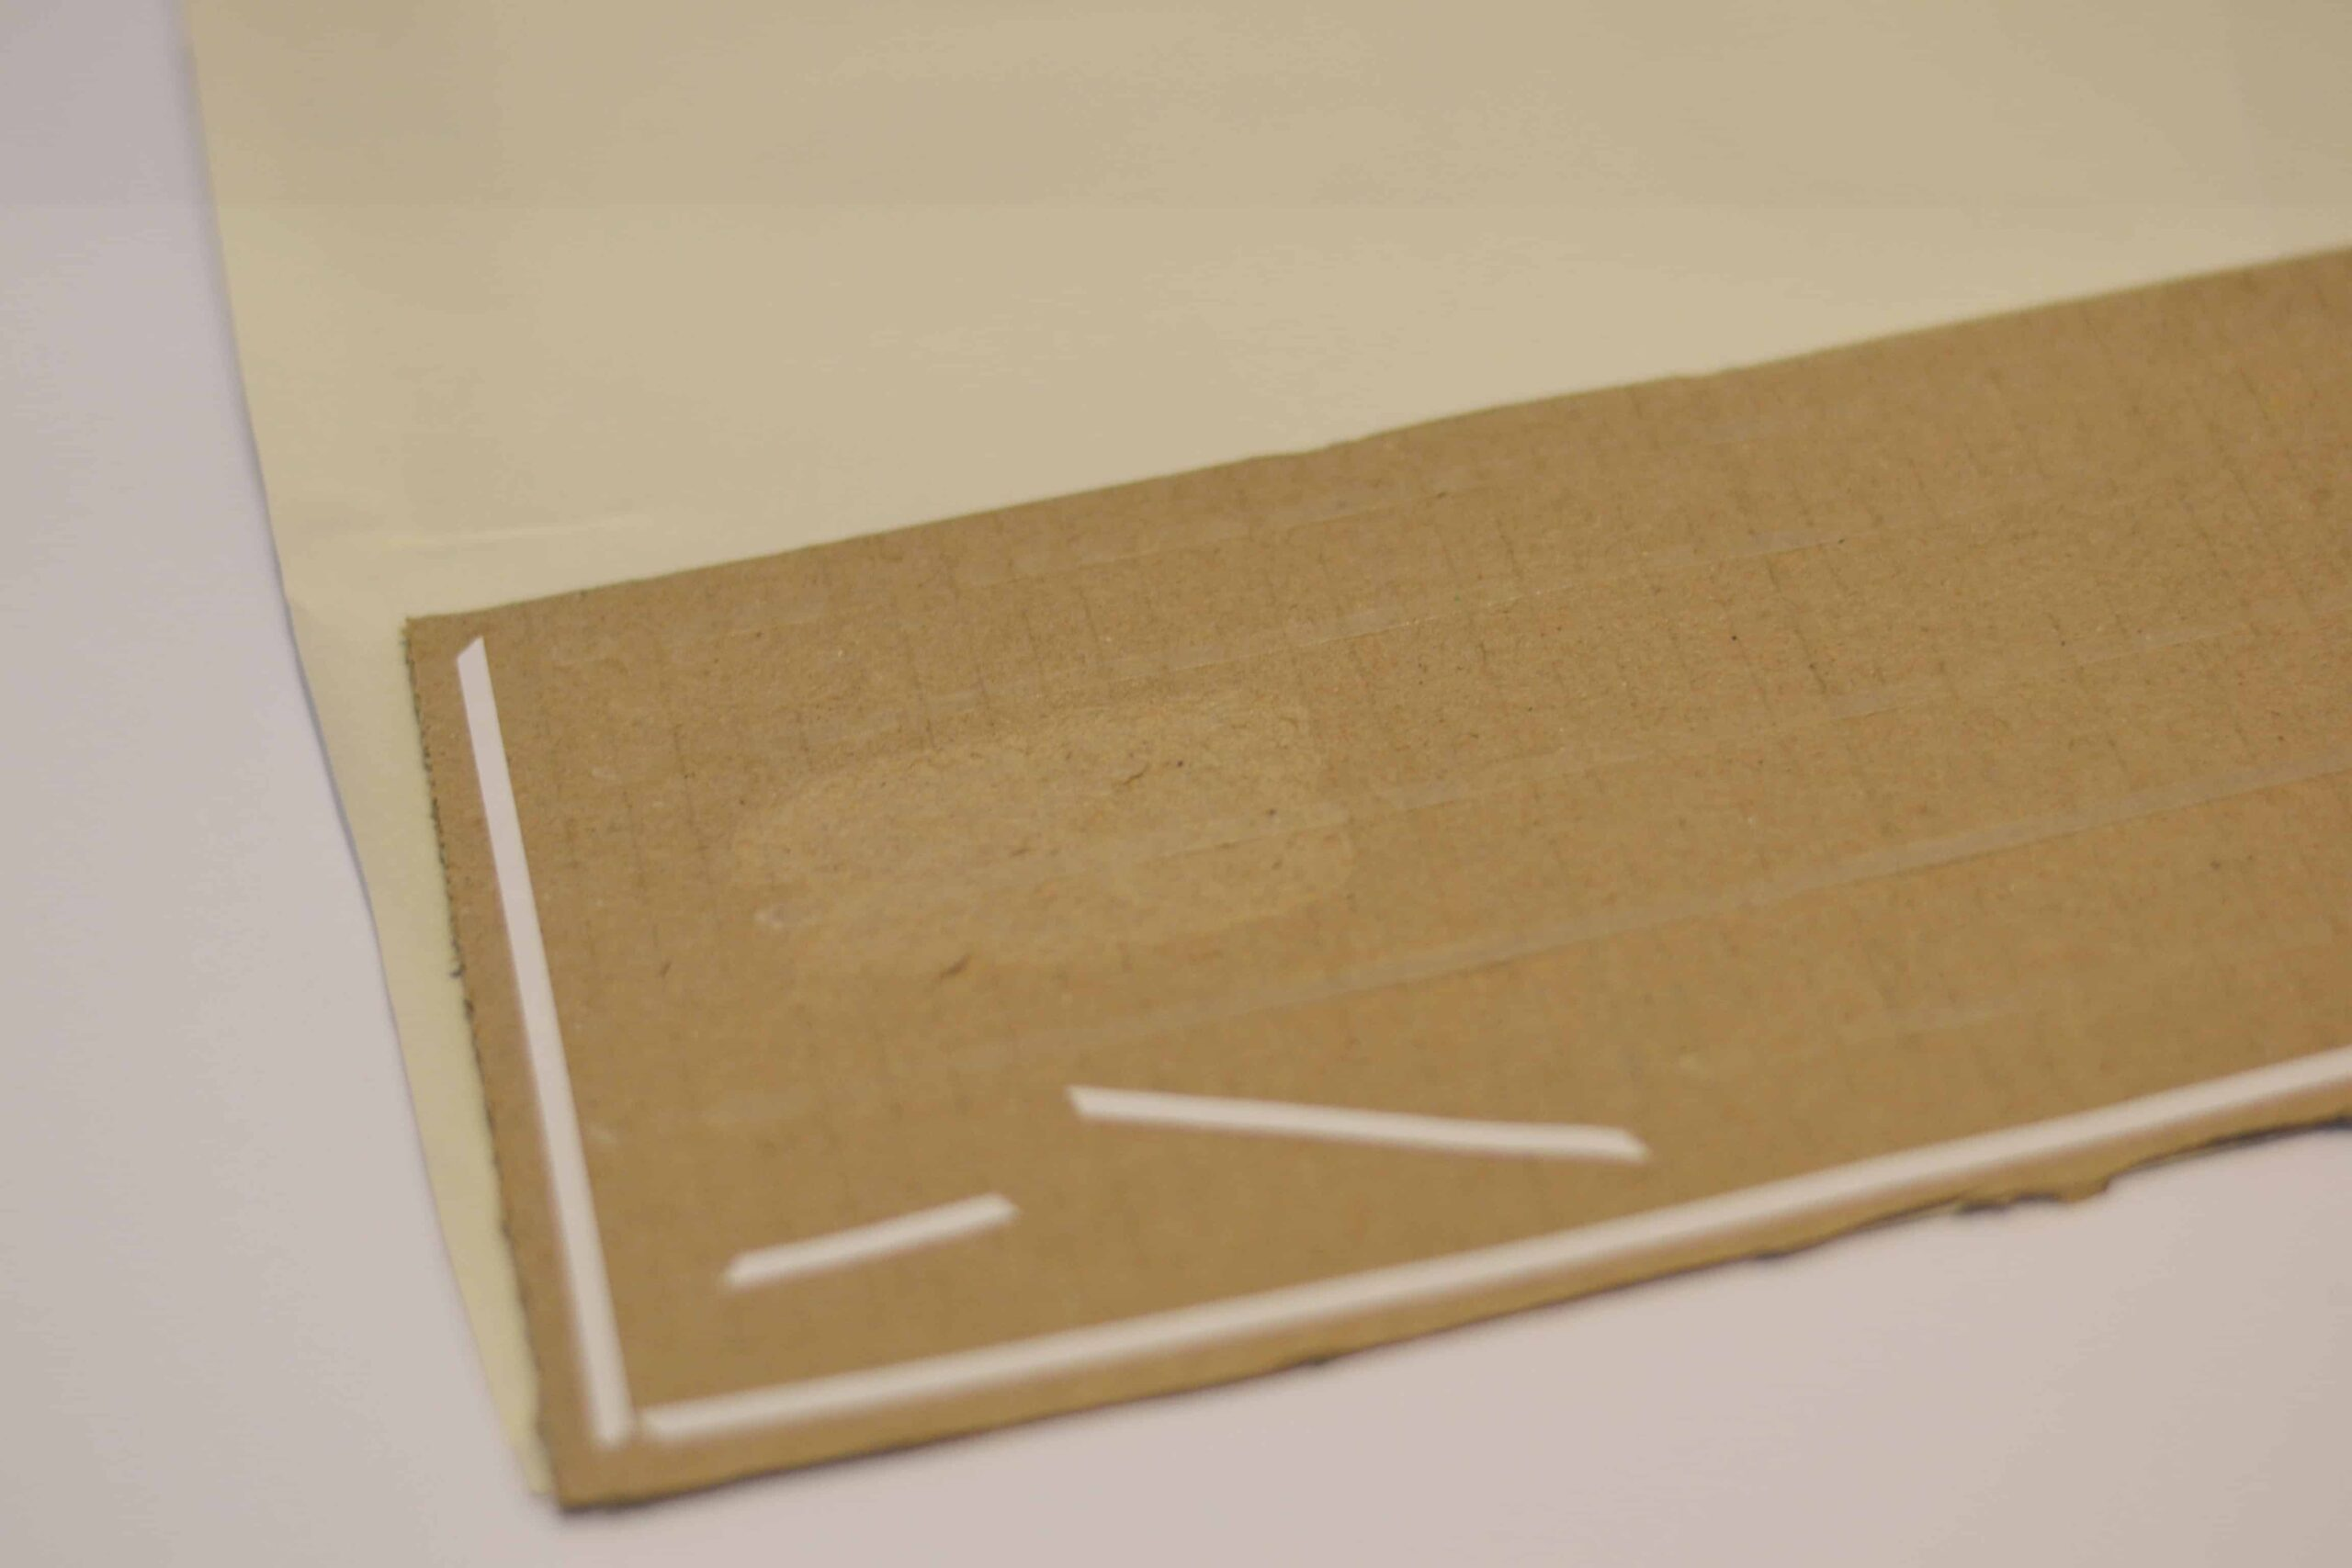 Cover cardboard with paper